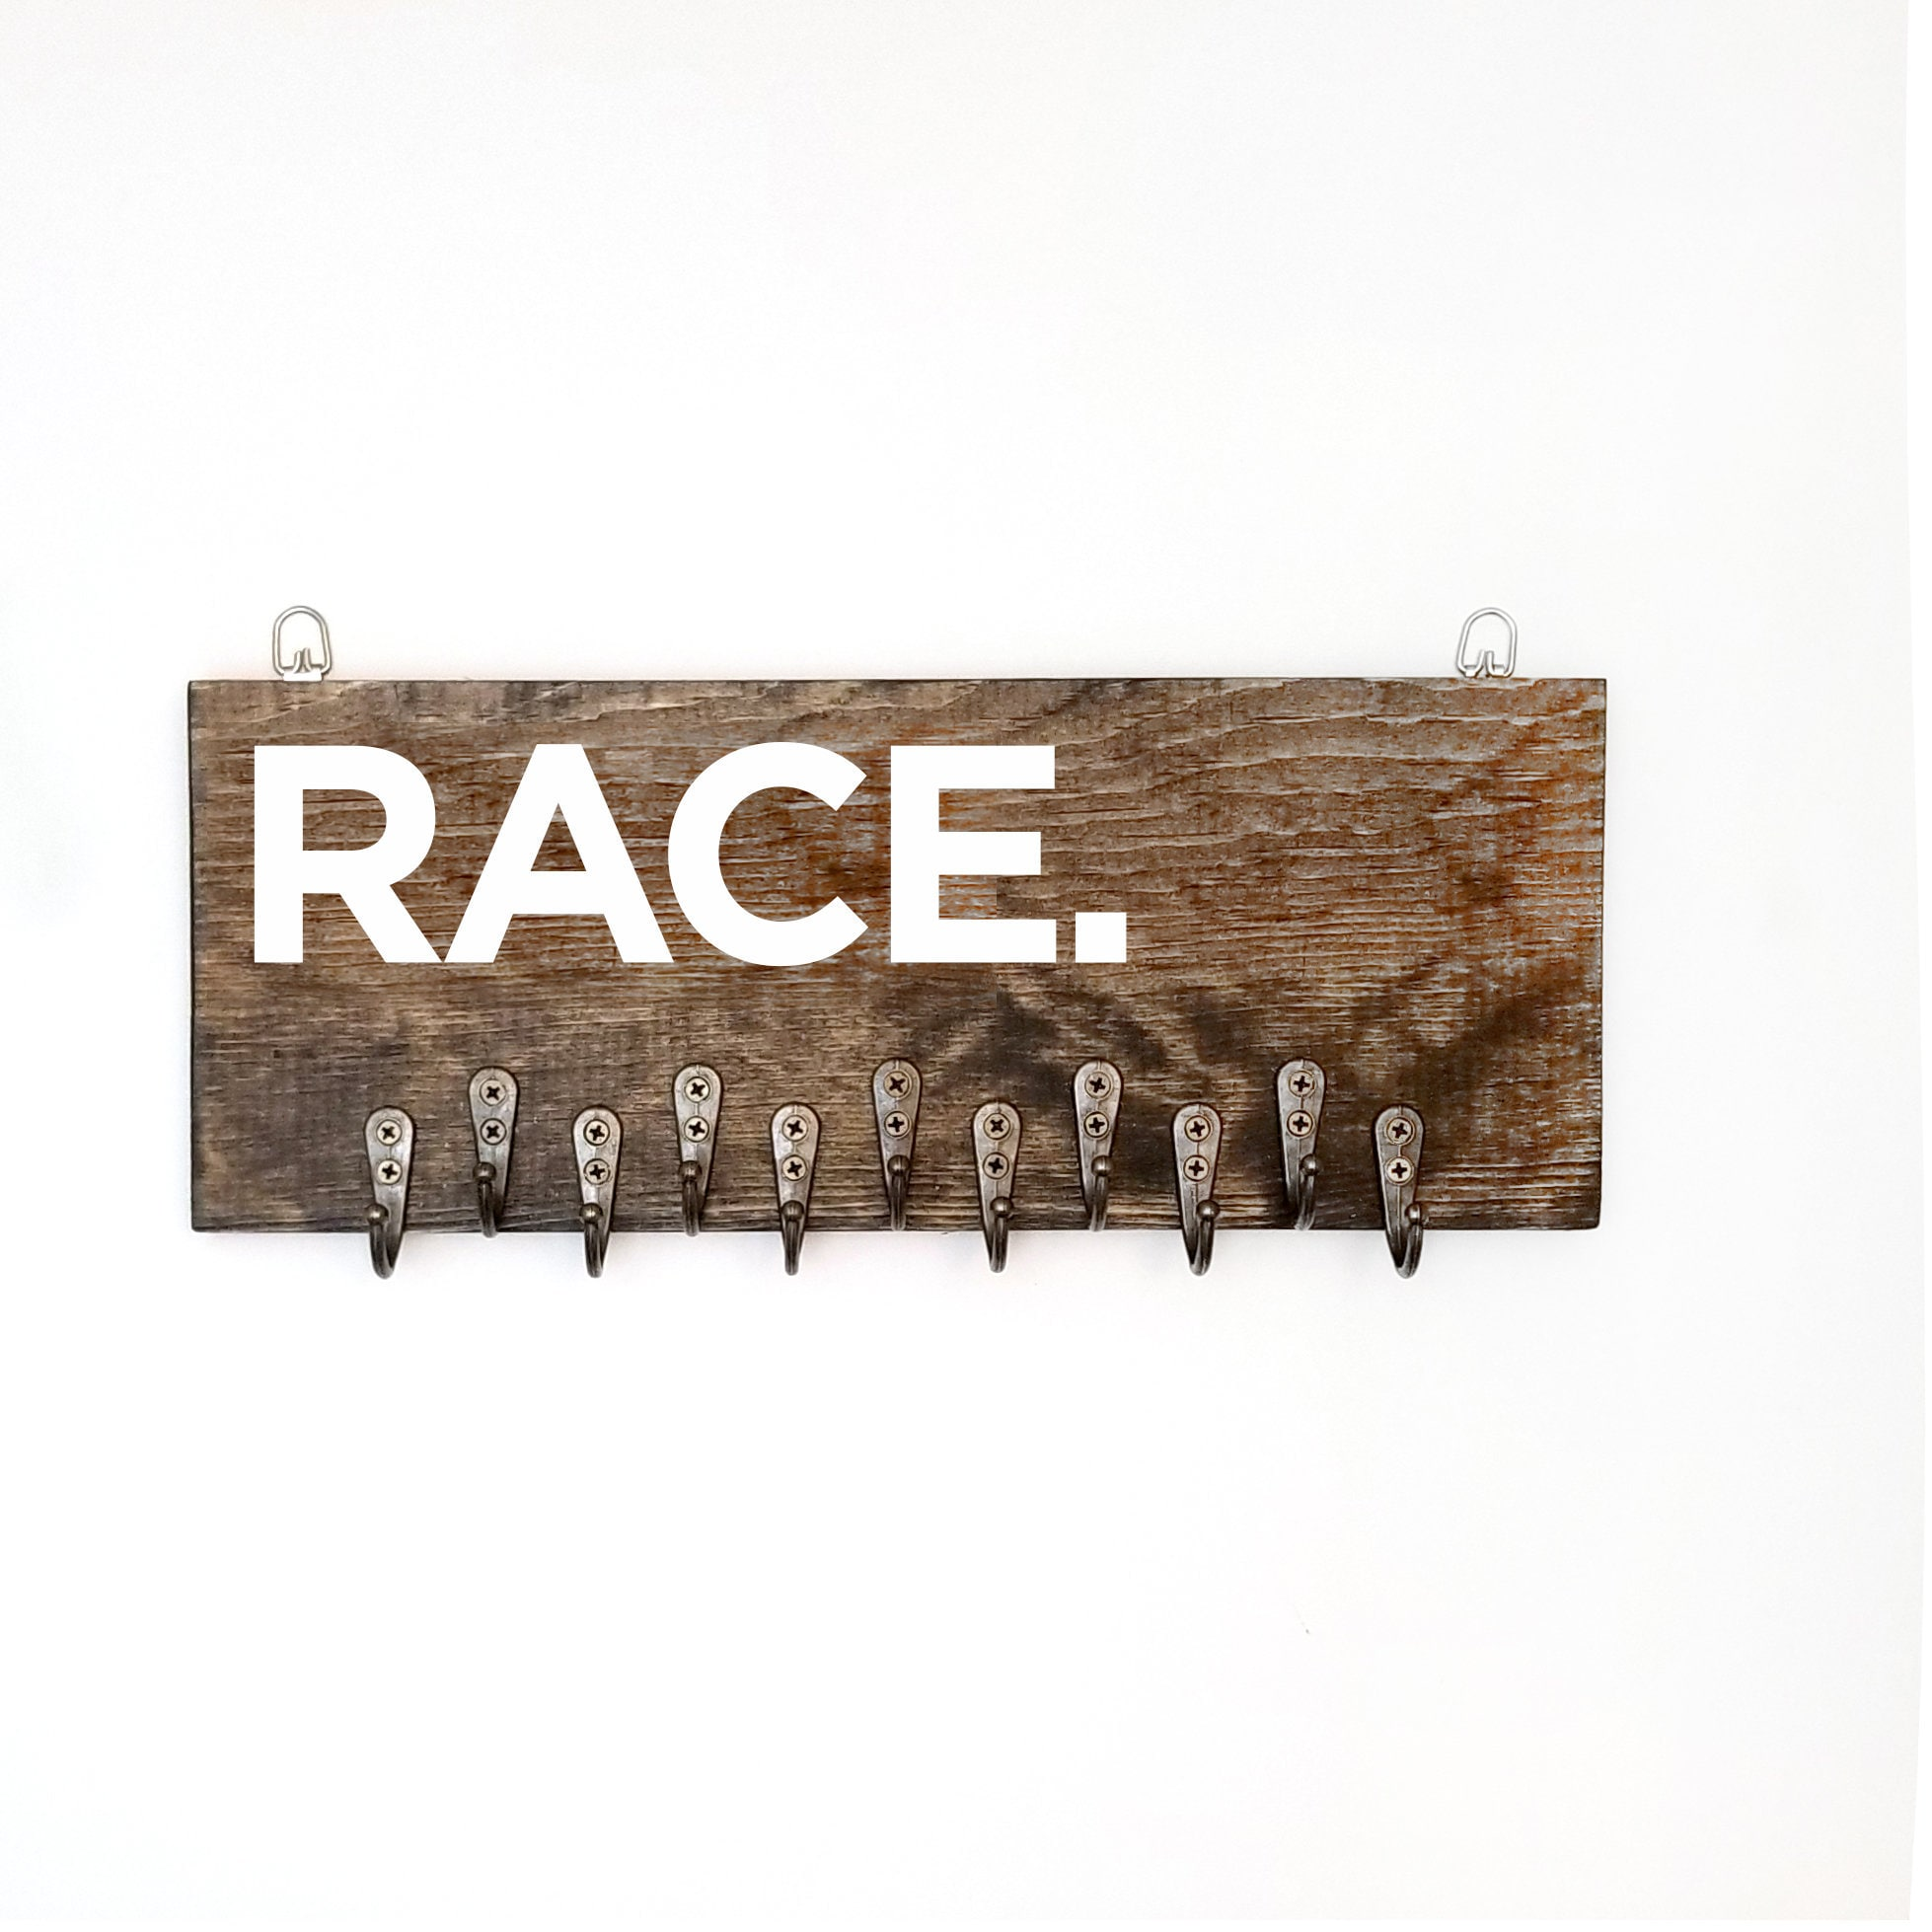 Wooden Race Medal Holder Running Accessories Gifts For Runners Marathon Medal Display Hand Painted Rustic Upcycled Wall Art 5k 10k